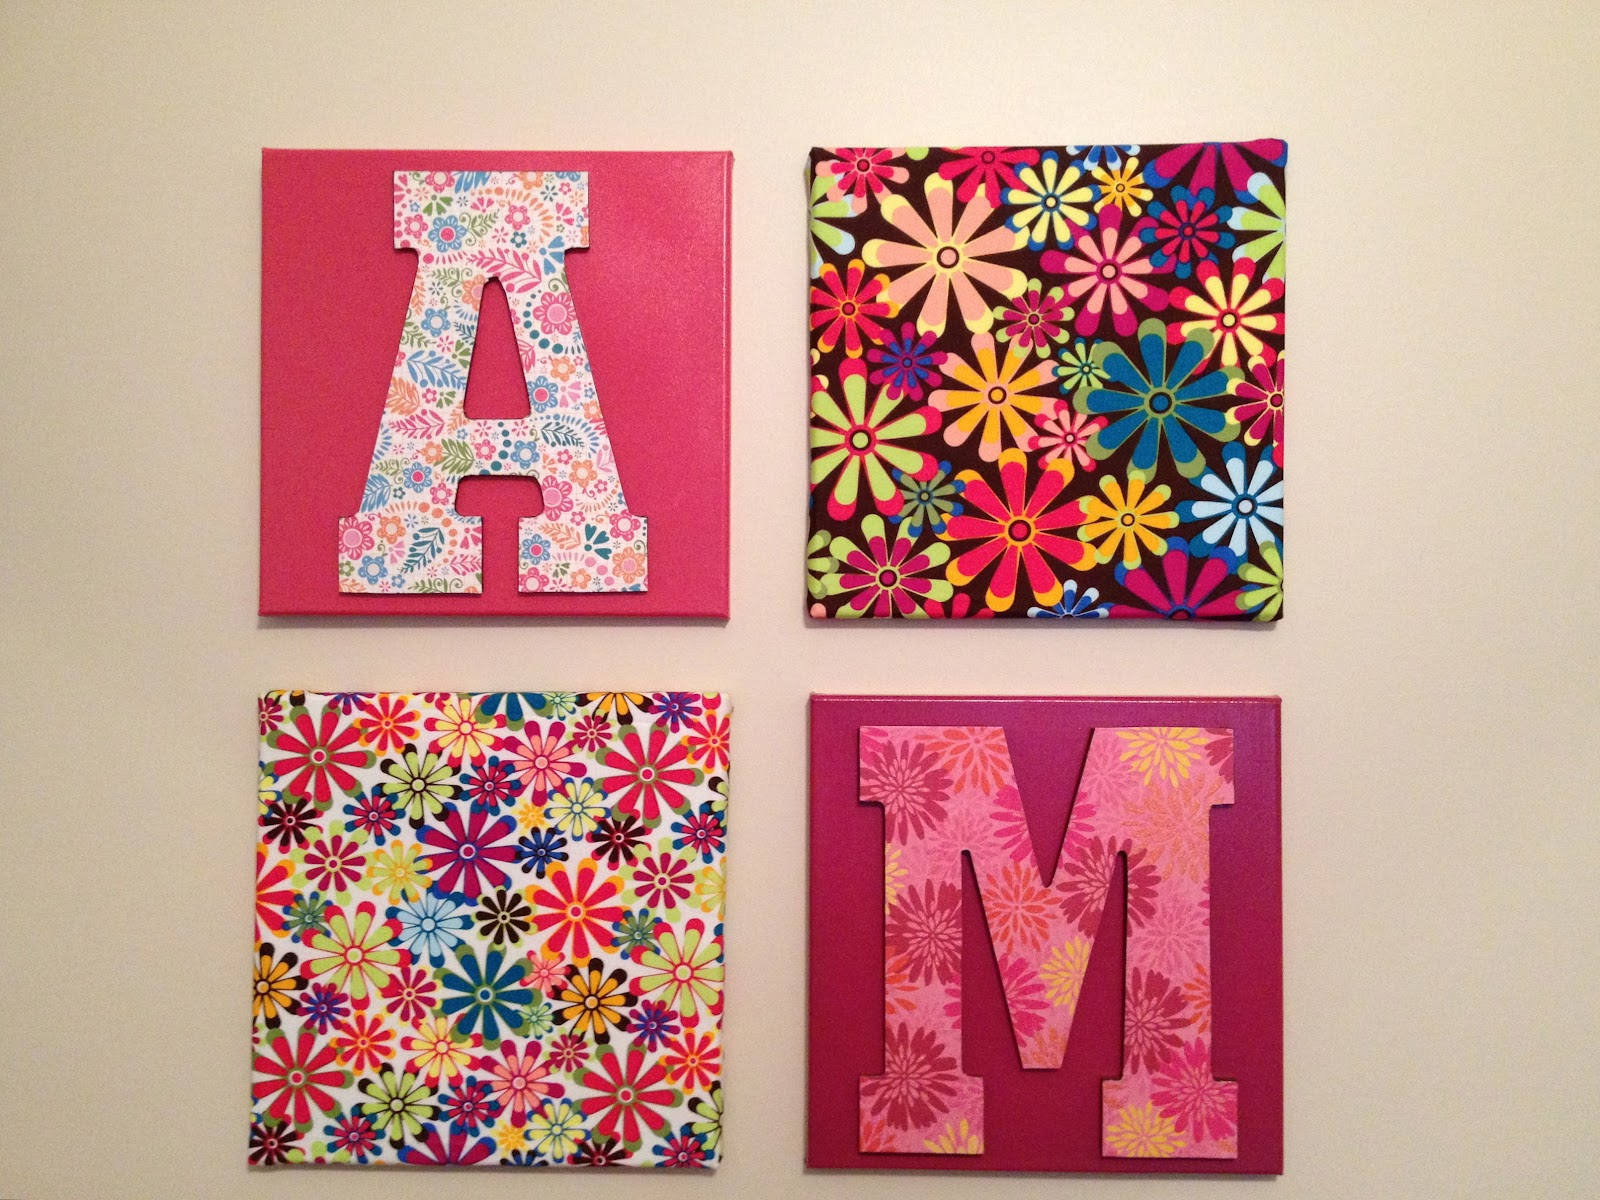 diy wall art for kids room 6 canvas painting ideas art wall - Canvas Design Ideas